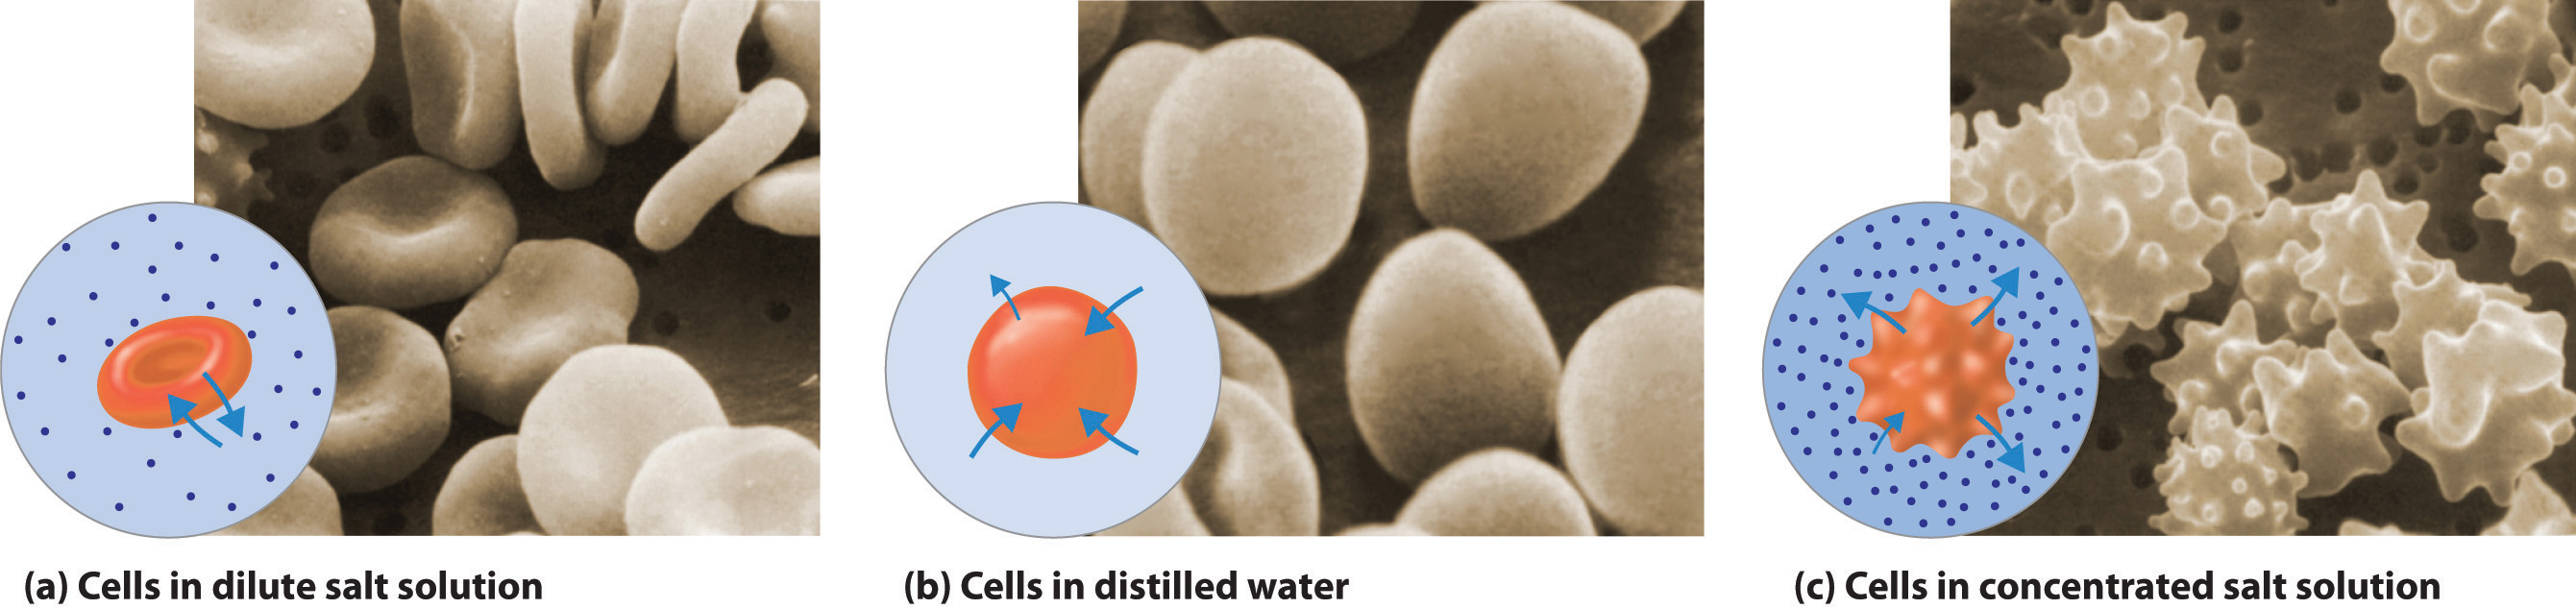 what is the percentage of salt in red blood cells